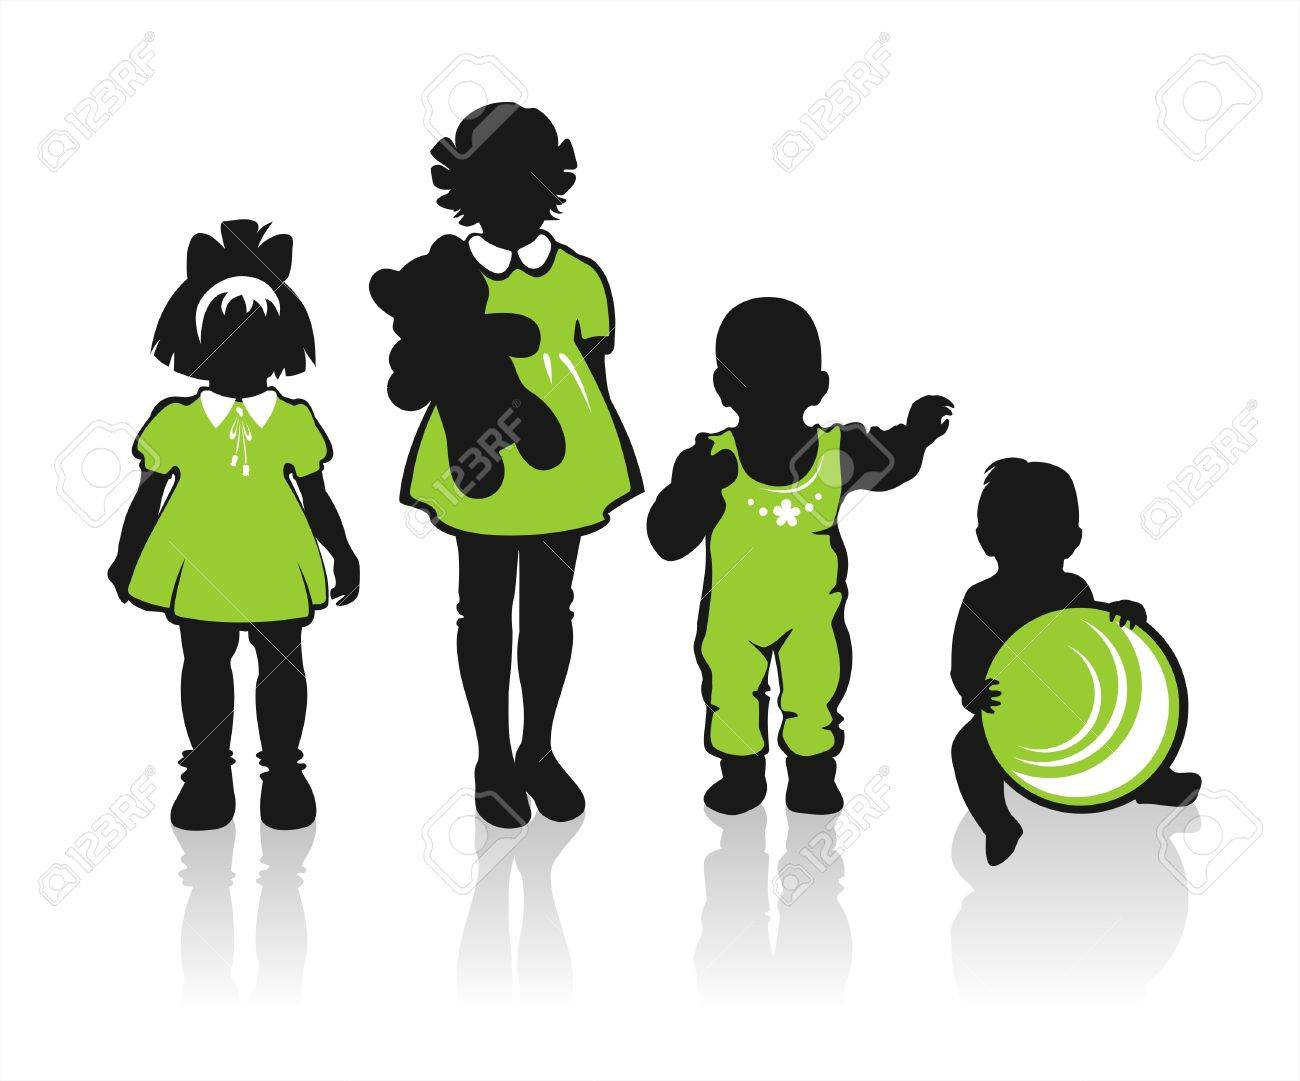 Black children's silhouettes on a white background. - 2207054